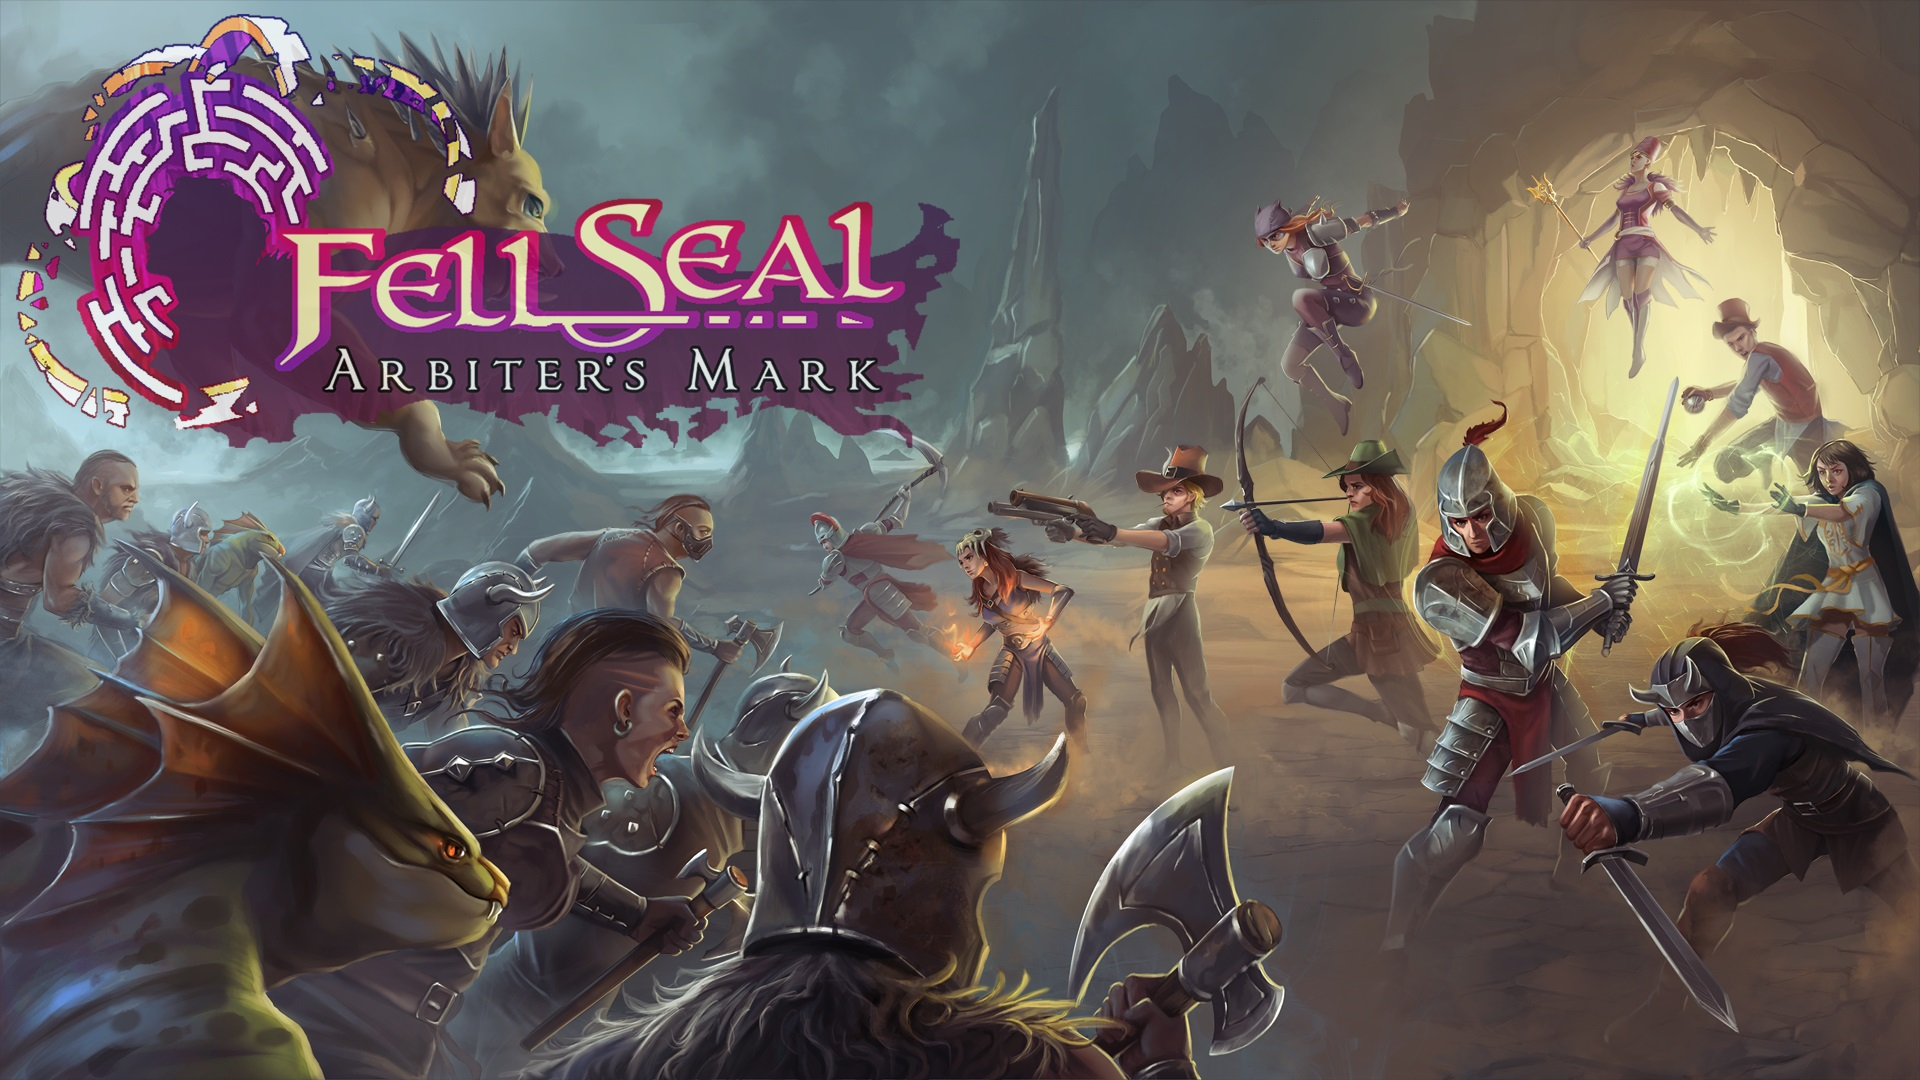 Fell Seal Promo Art